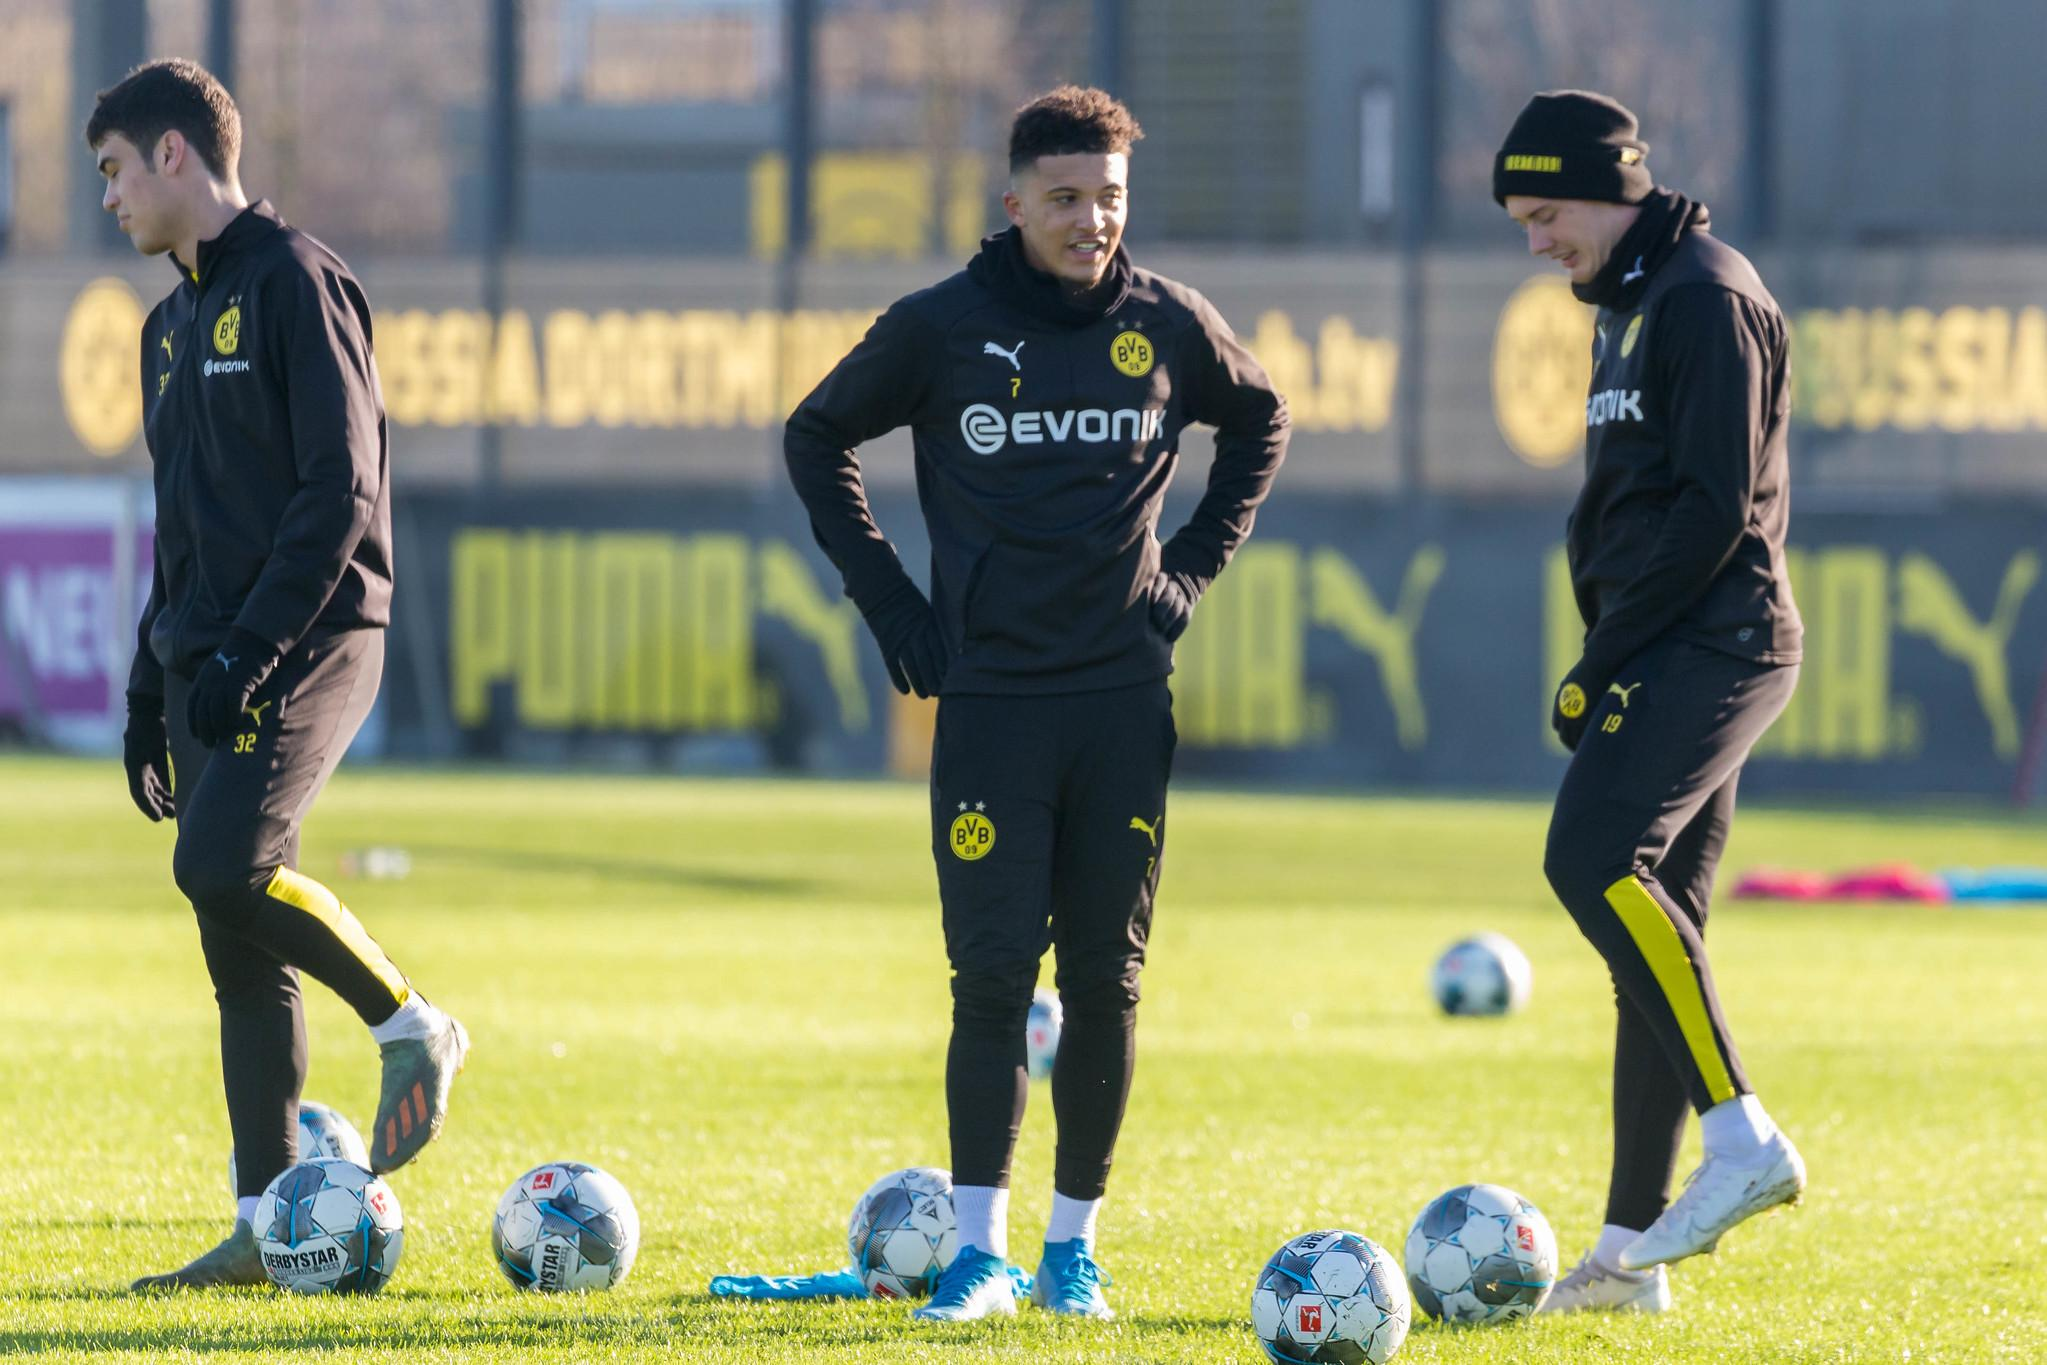 Giovanni Reyna, Jadon Sancho and Julian Brandt during the Borussia Dortmund training.